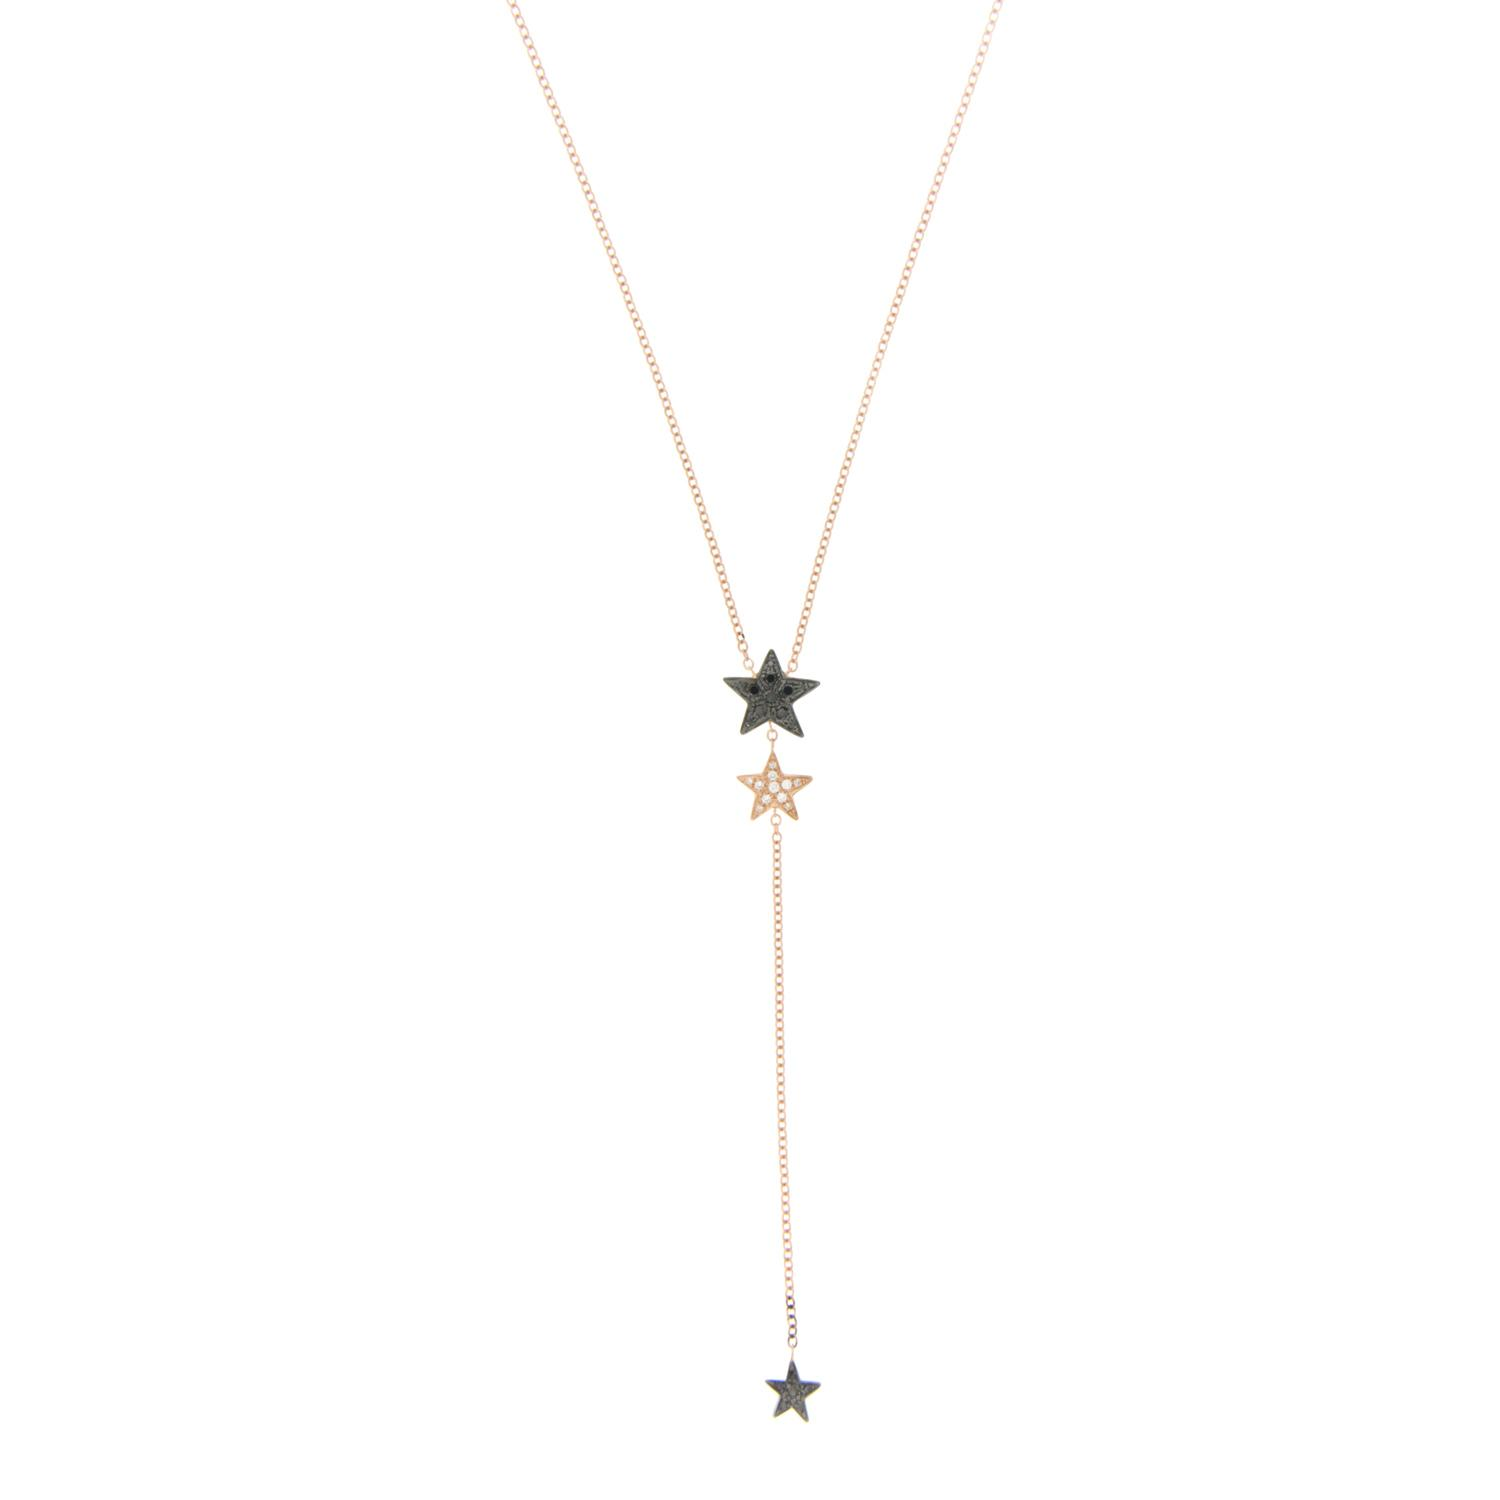 Y-shape necklace in rose gold and diamonds